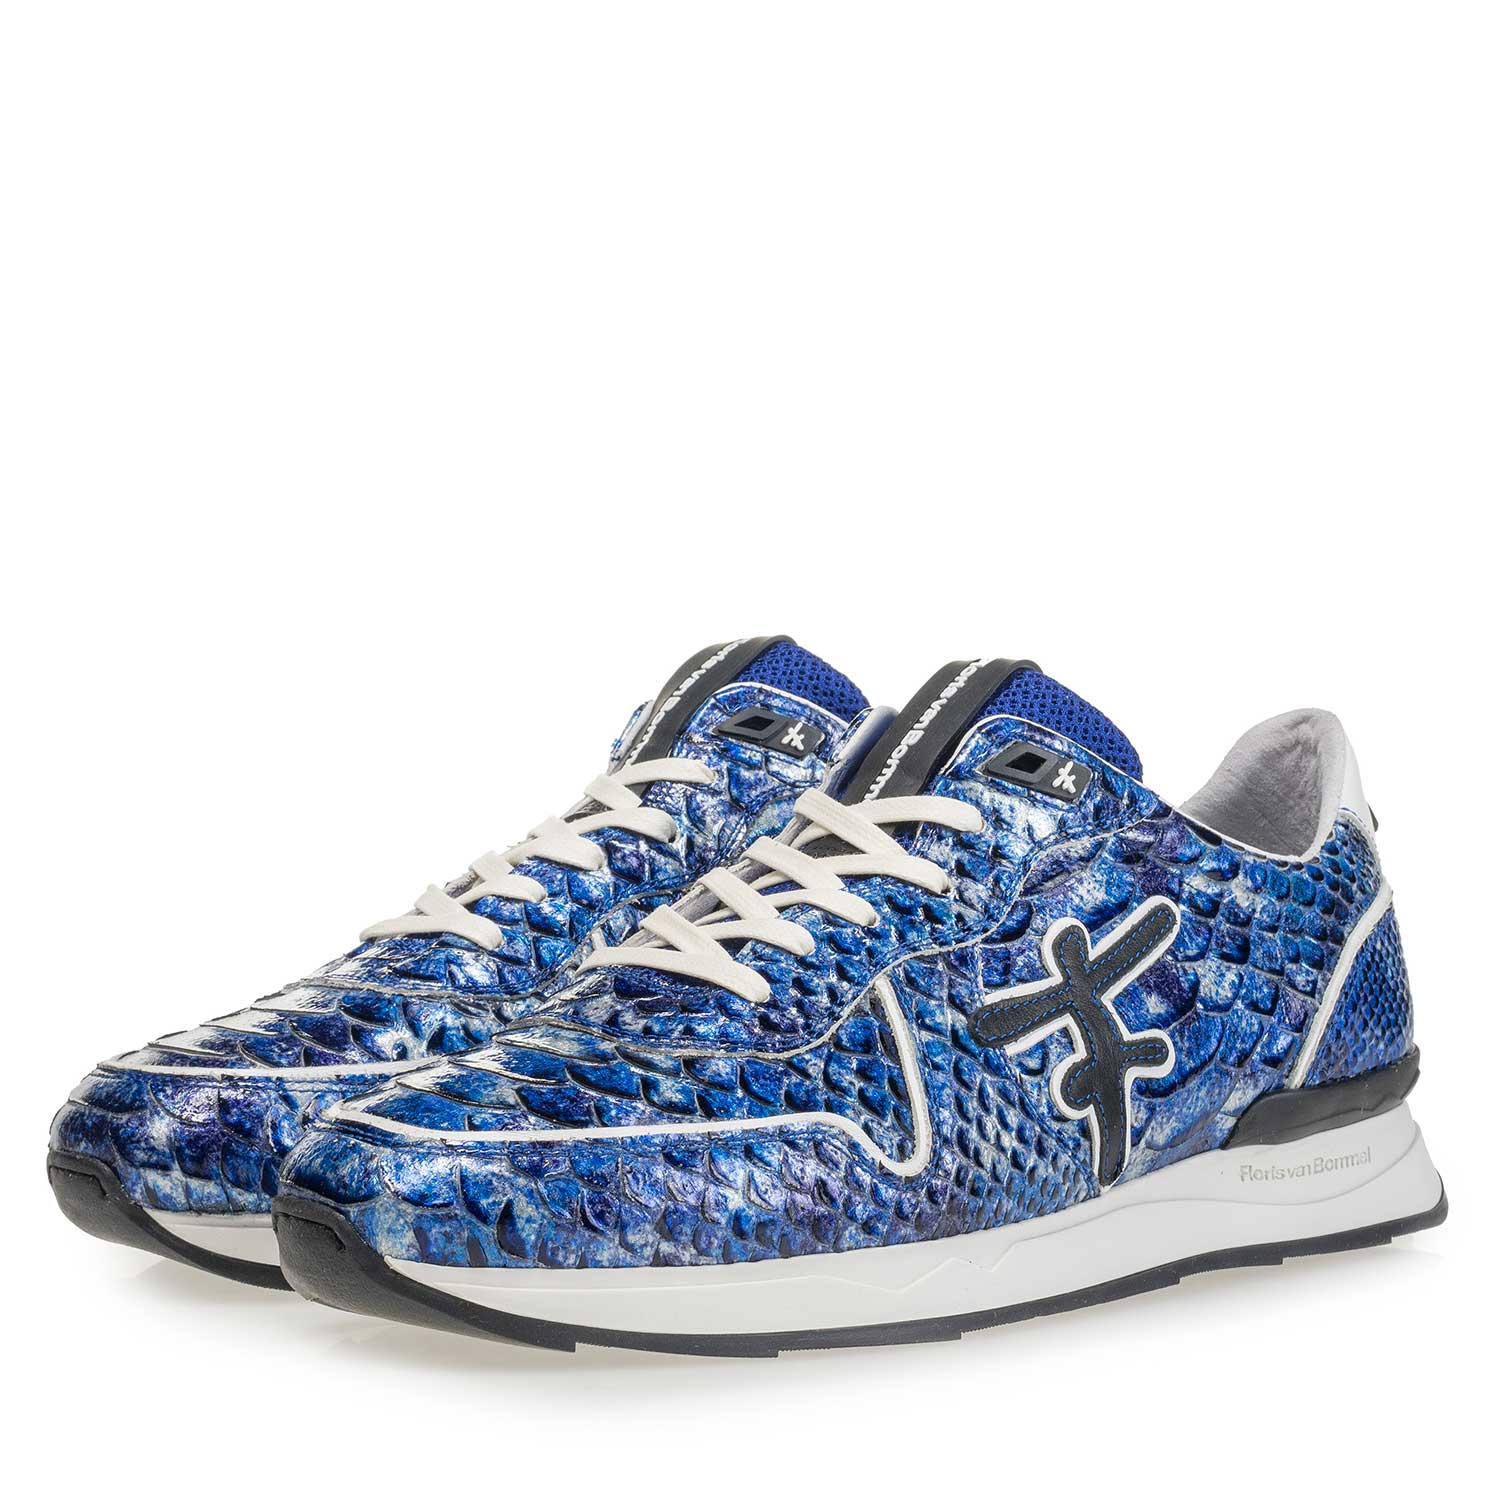 16246/14 - Blue patent leather snake print sneaker